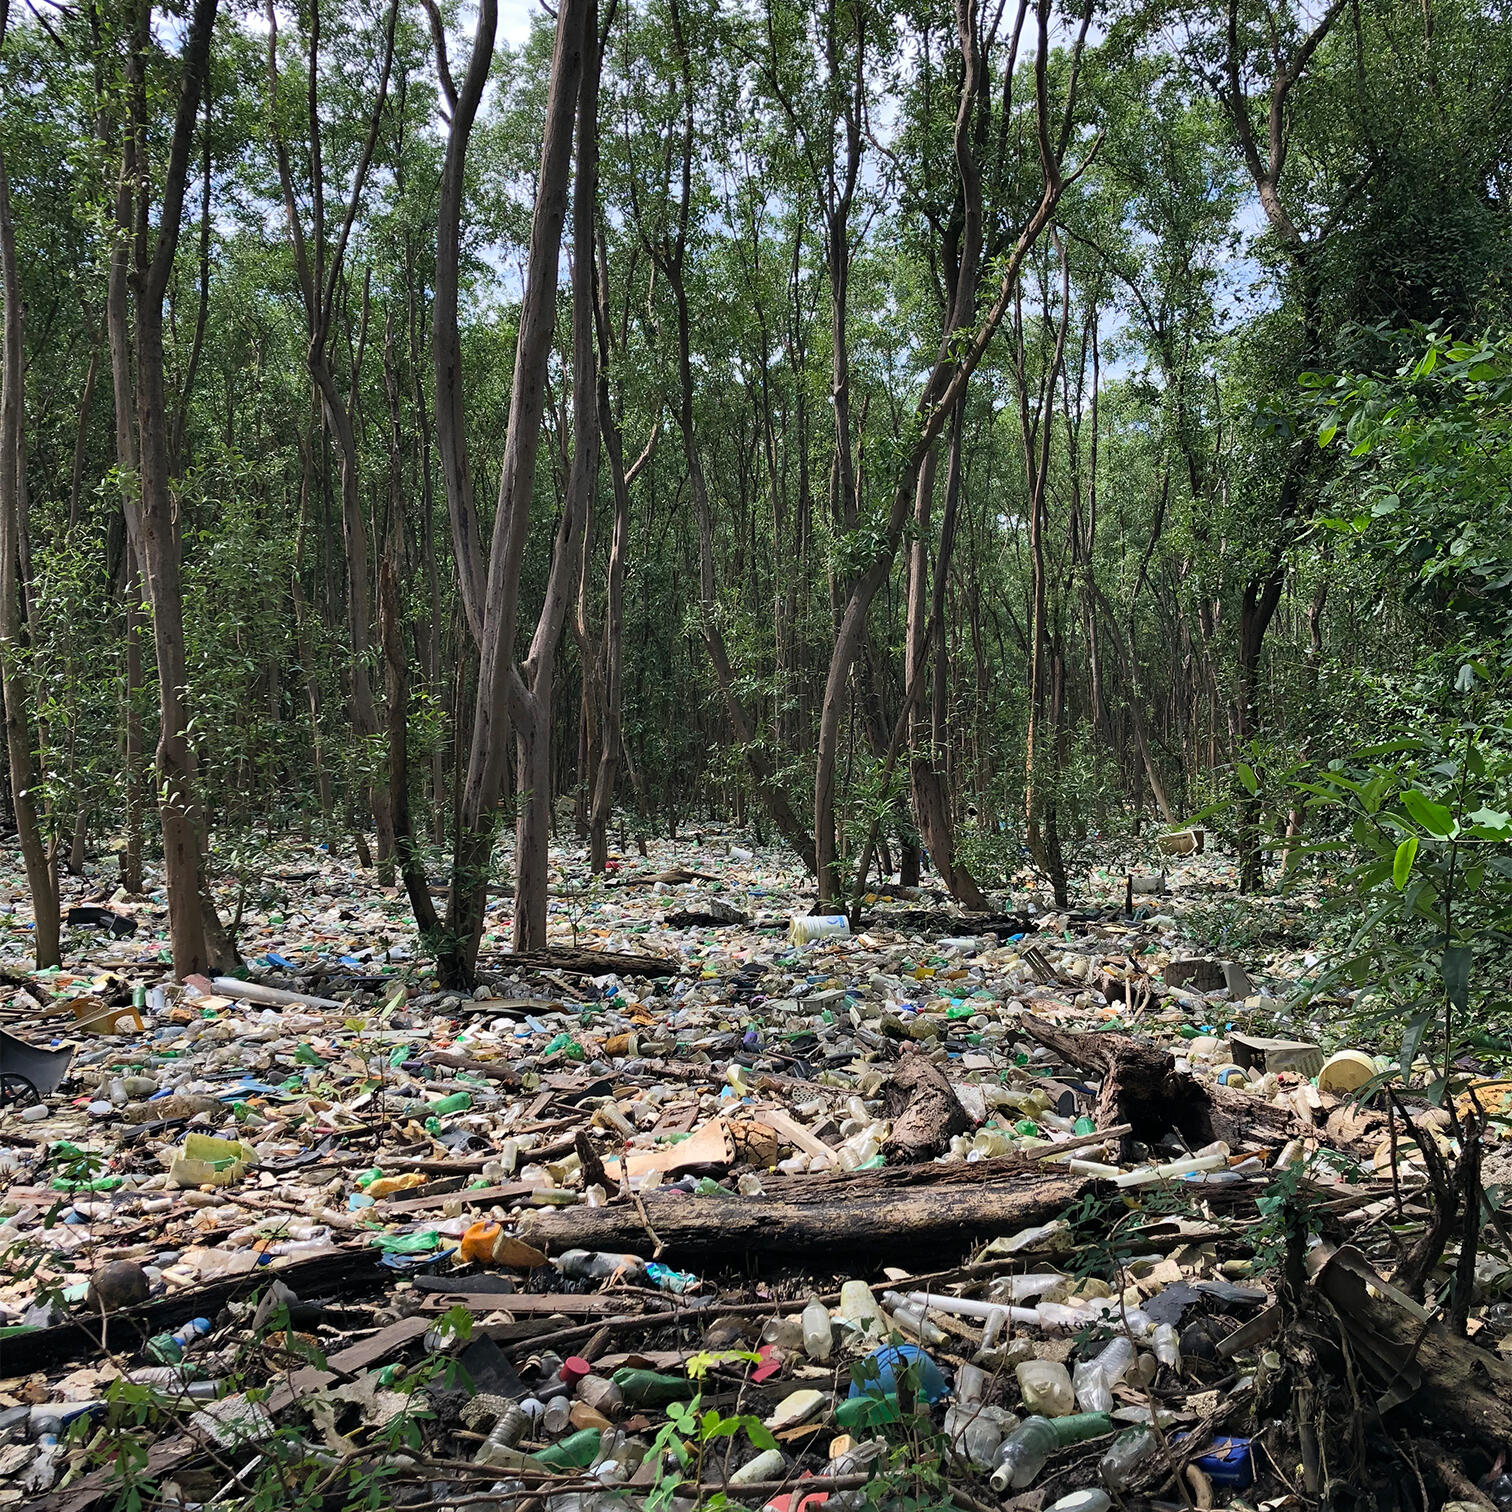 Photograph of plastic pollution in a mangrove ecosystem in the Bay of Panama